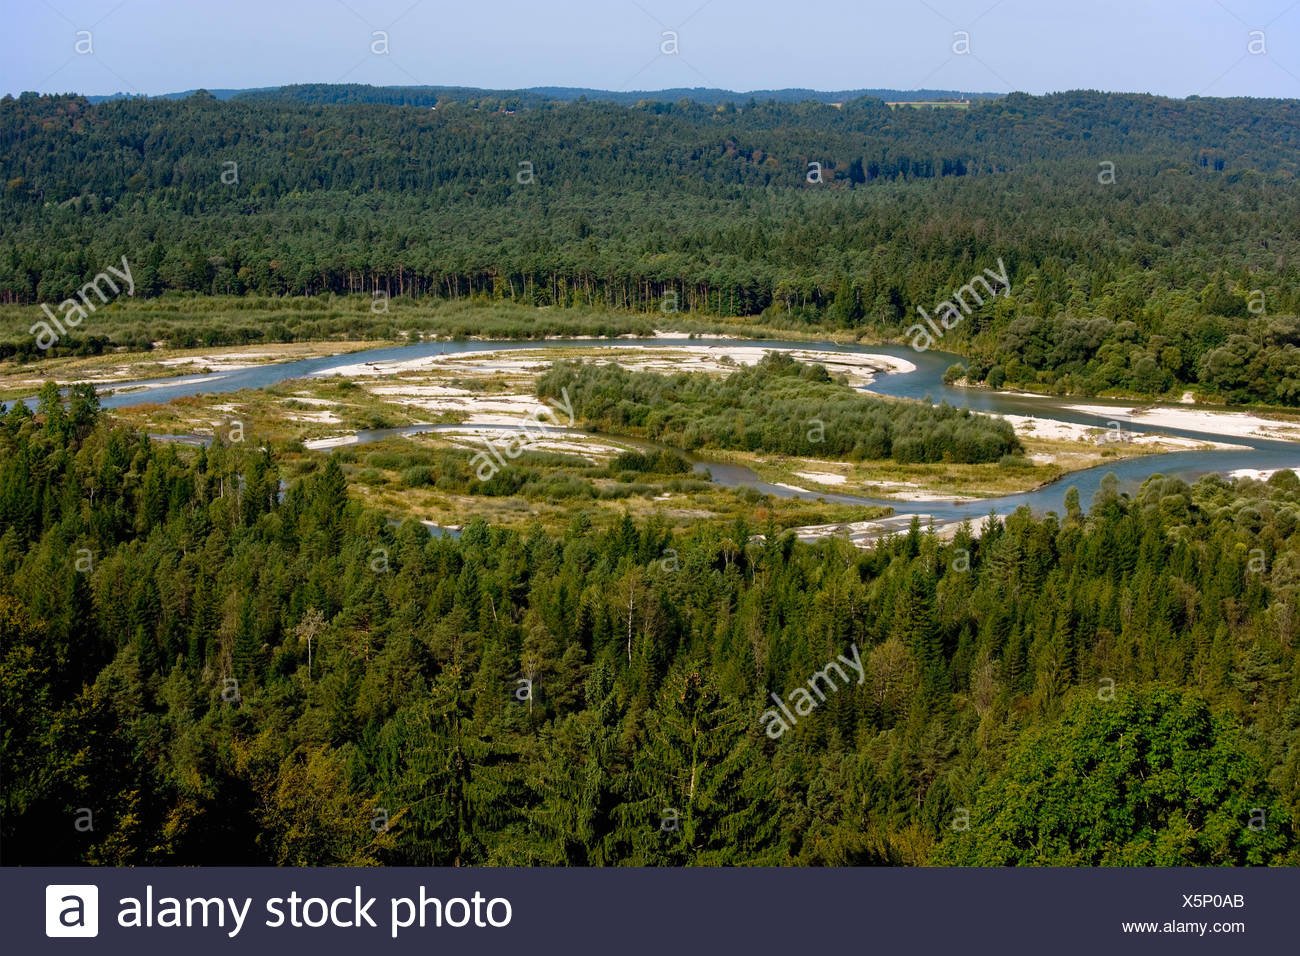 Germany, View of River Isar - Stock Image